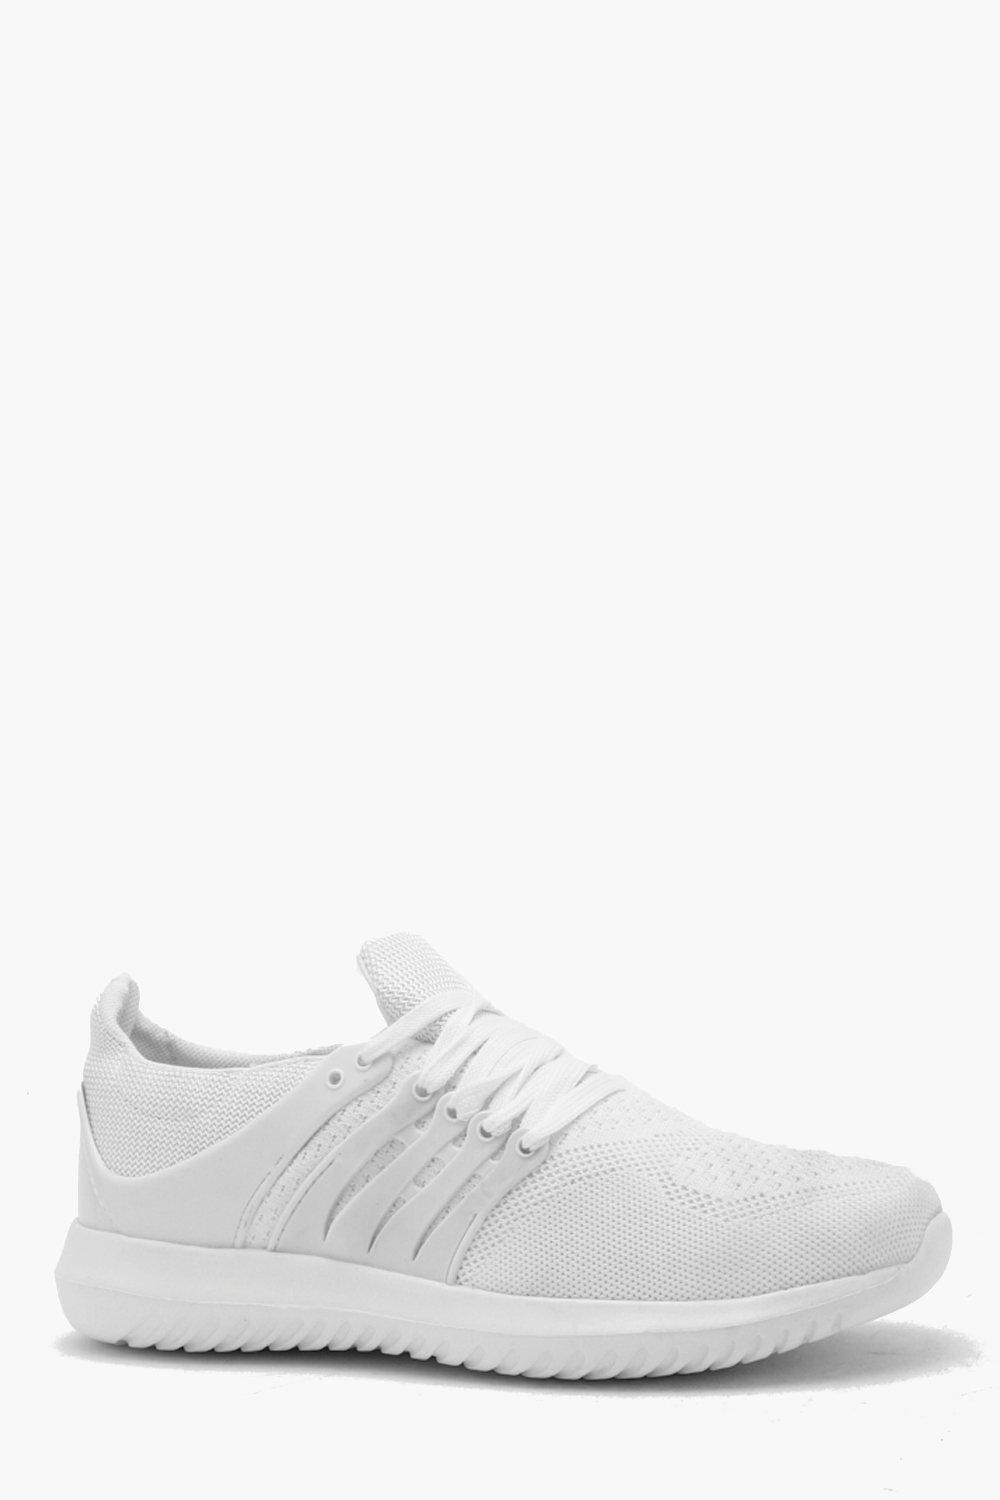 Fly Knit Lace Up Trainer